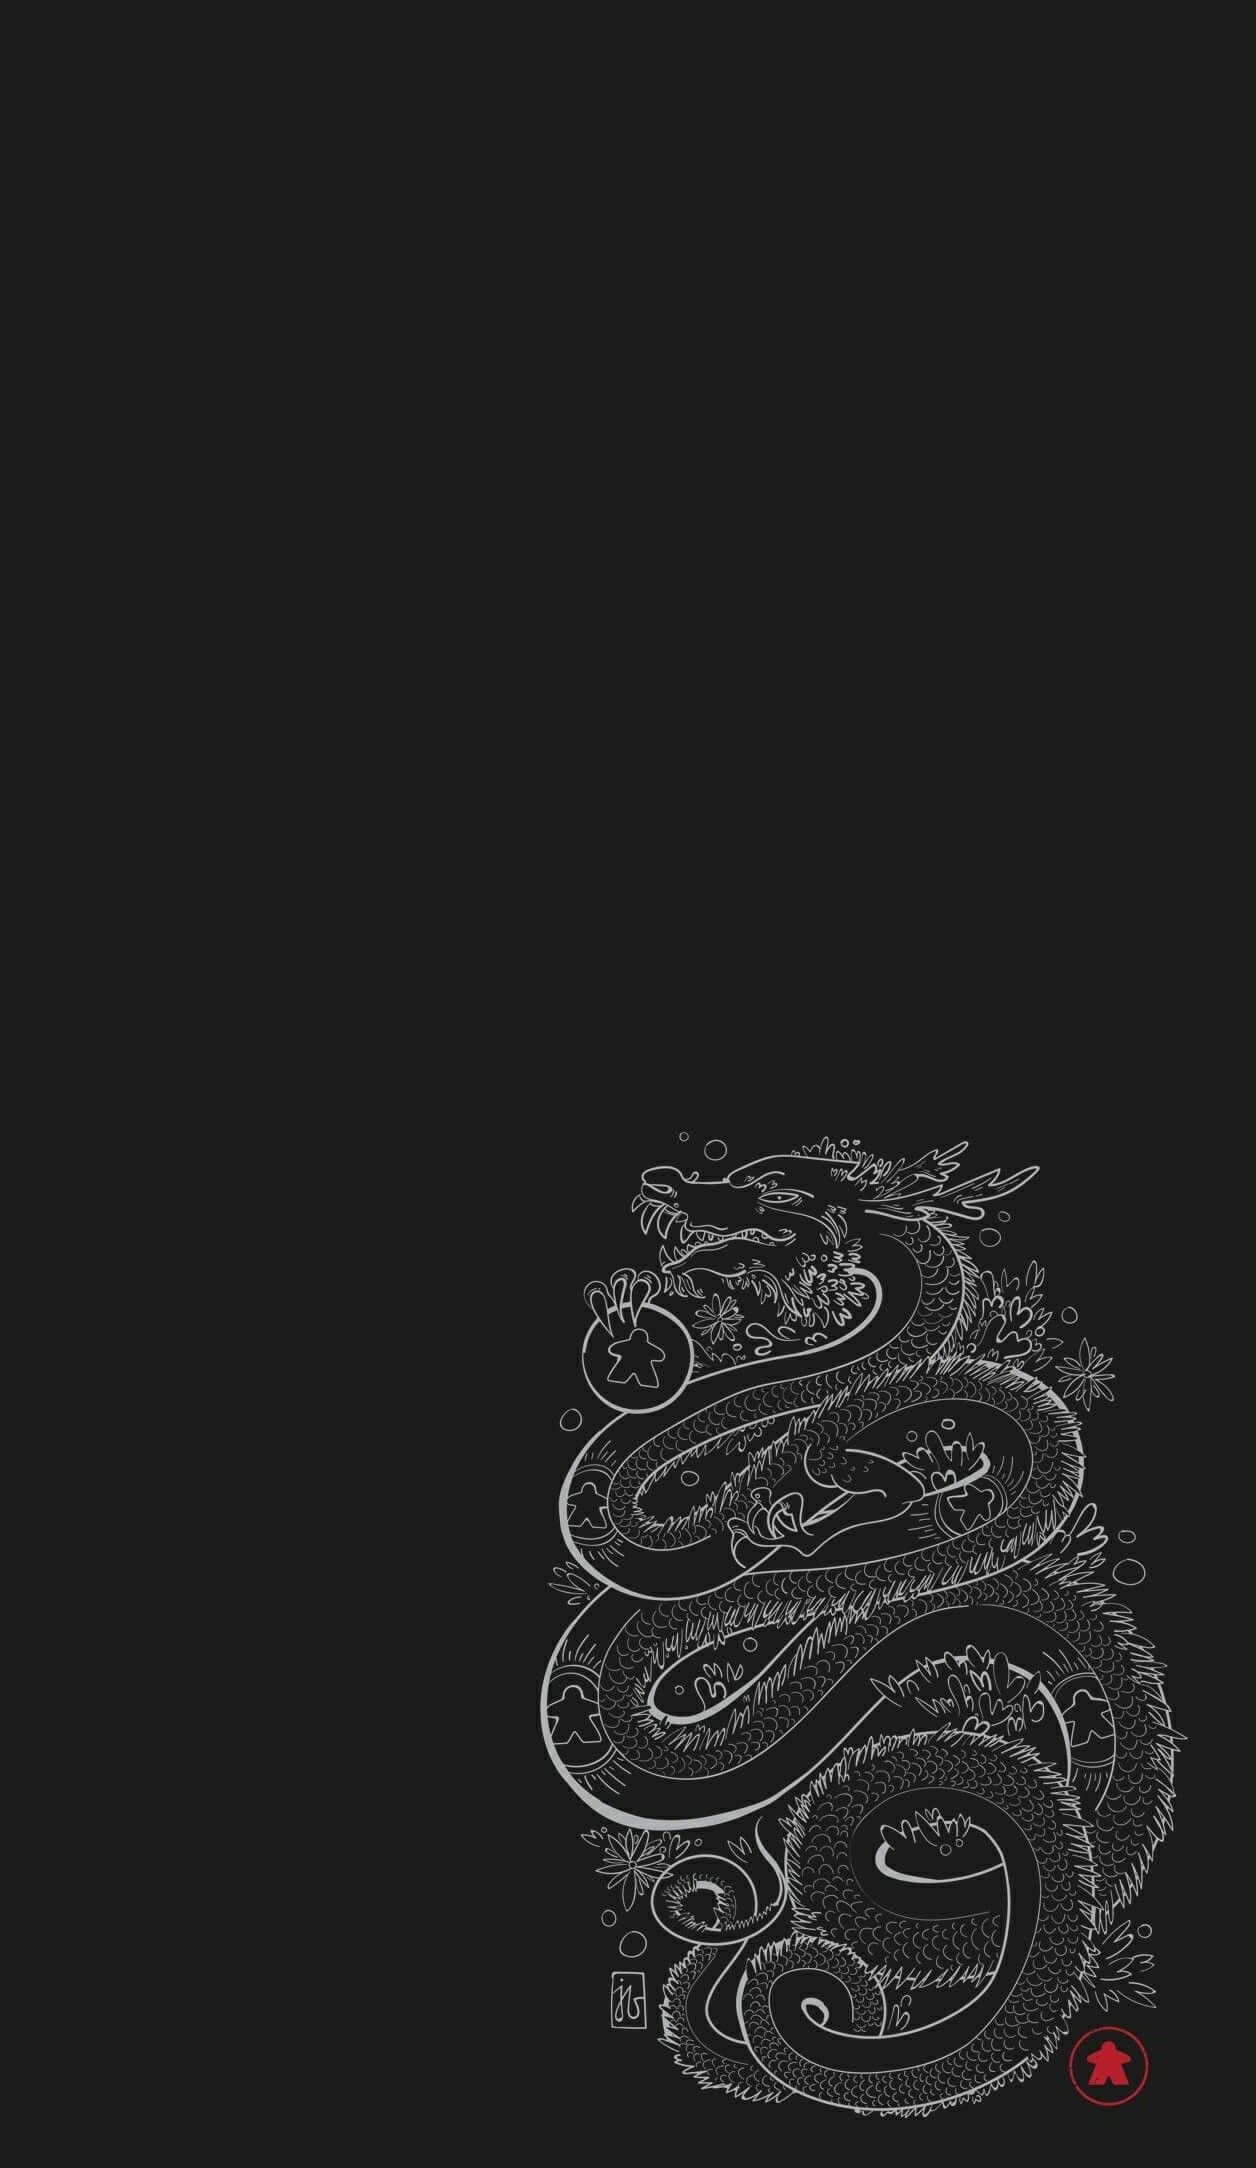 Aesthetic Dragon Wallpapers Wallpaper Cave